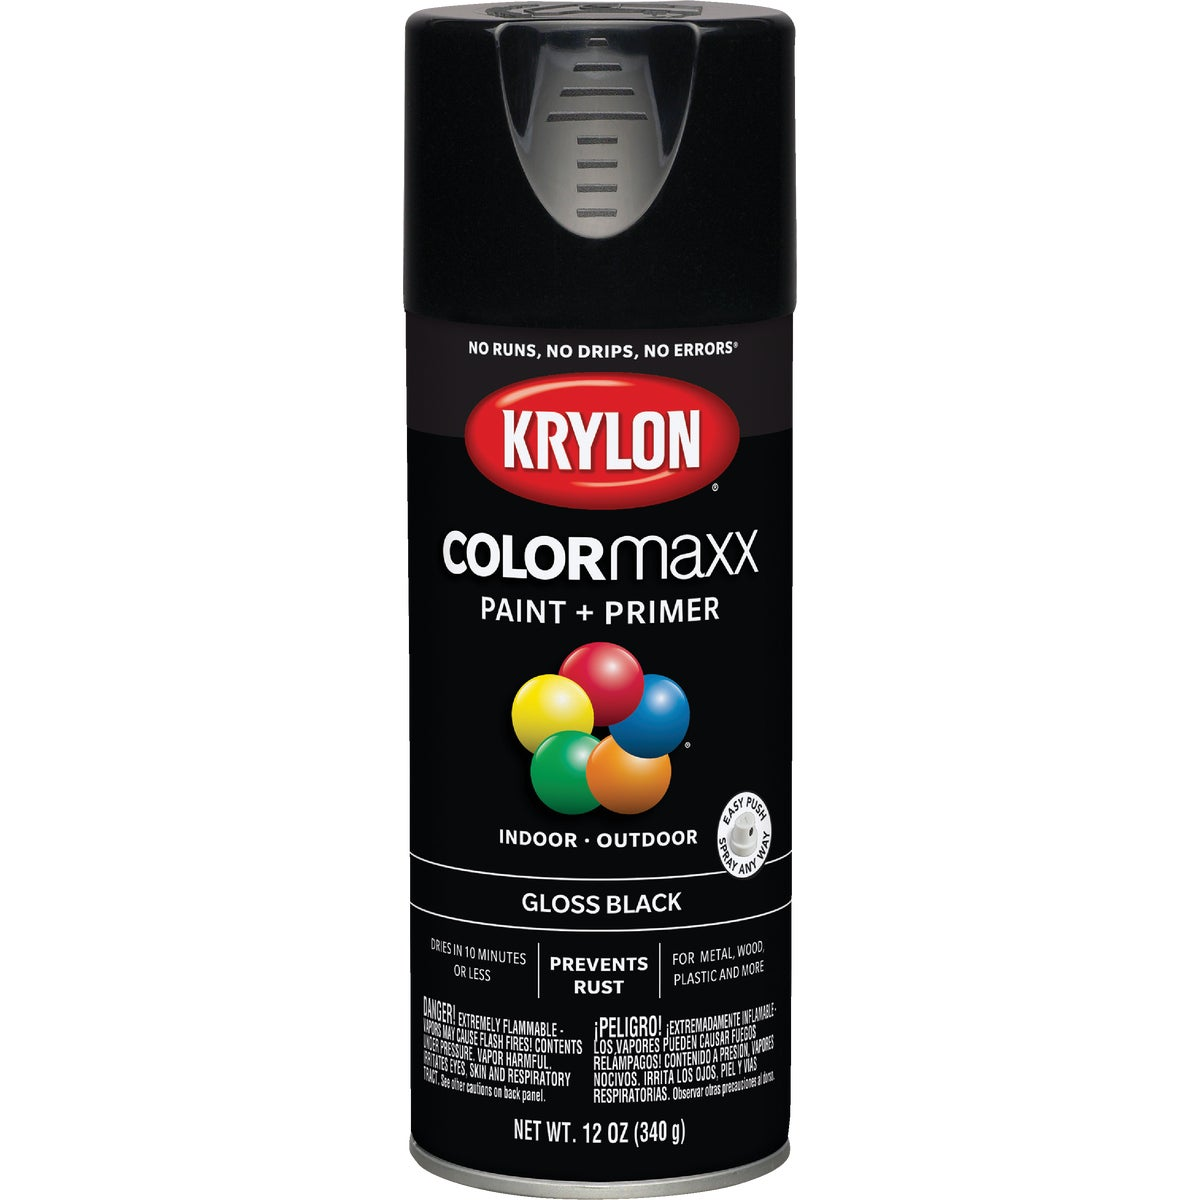 GLOSS BLACK SPRAY PAINT - 51601 by Krylon/consumer Div